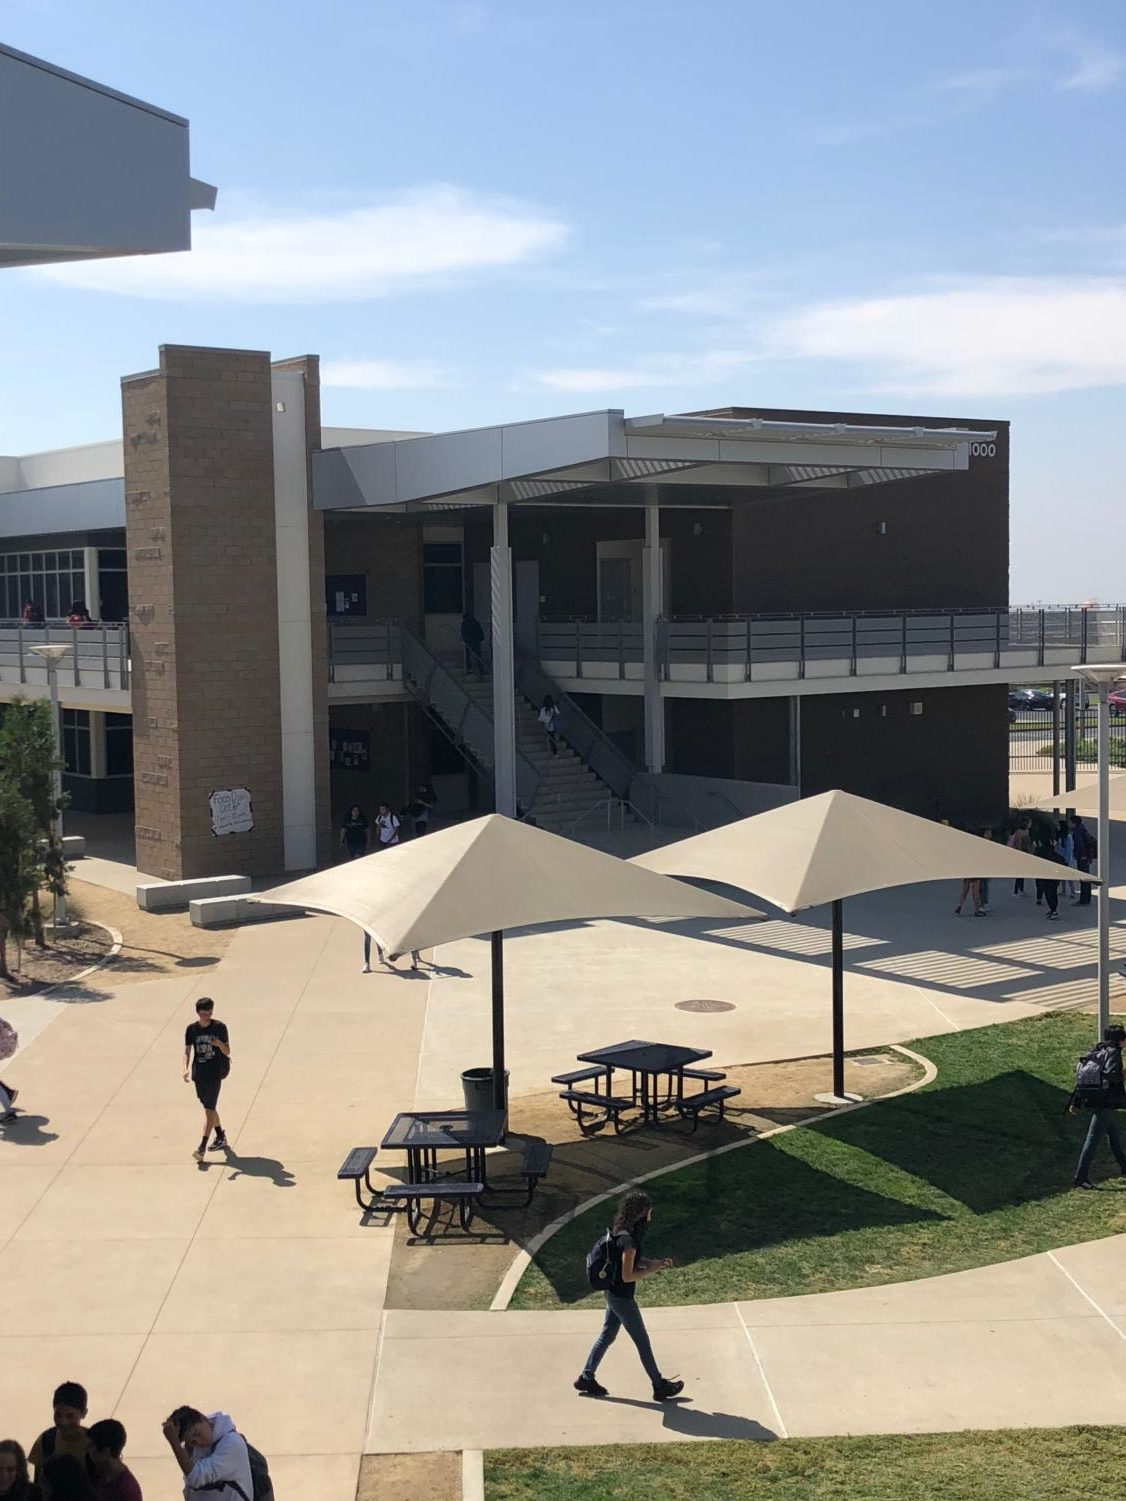 The new buildings that opened this year added an extra area for students to learn, while also creating more space around campus.